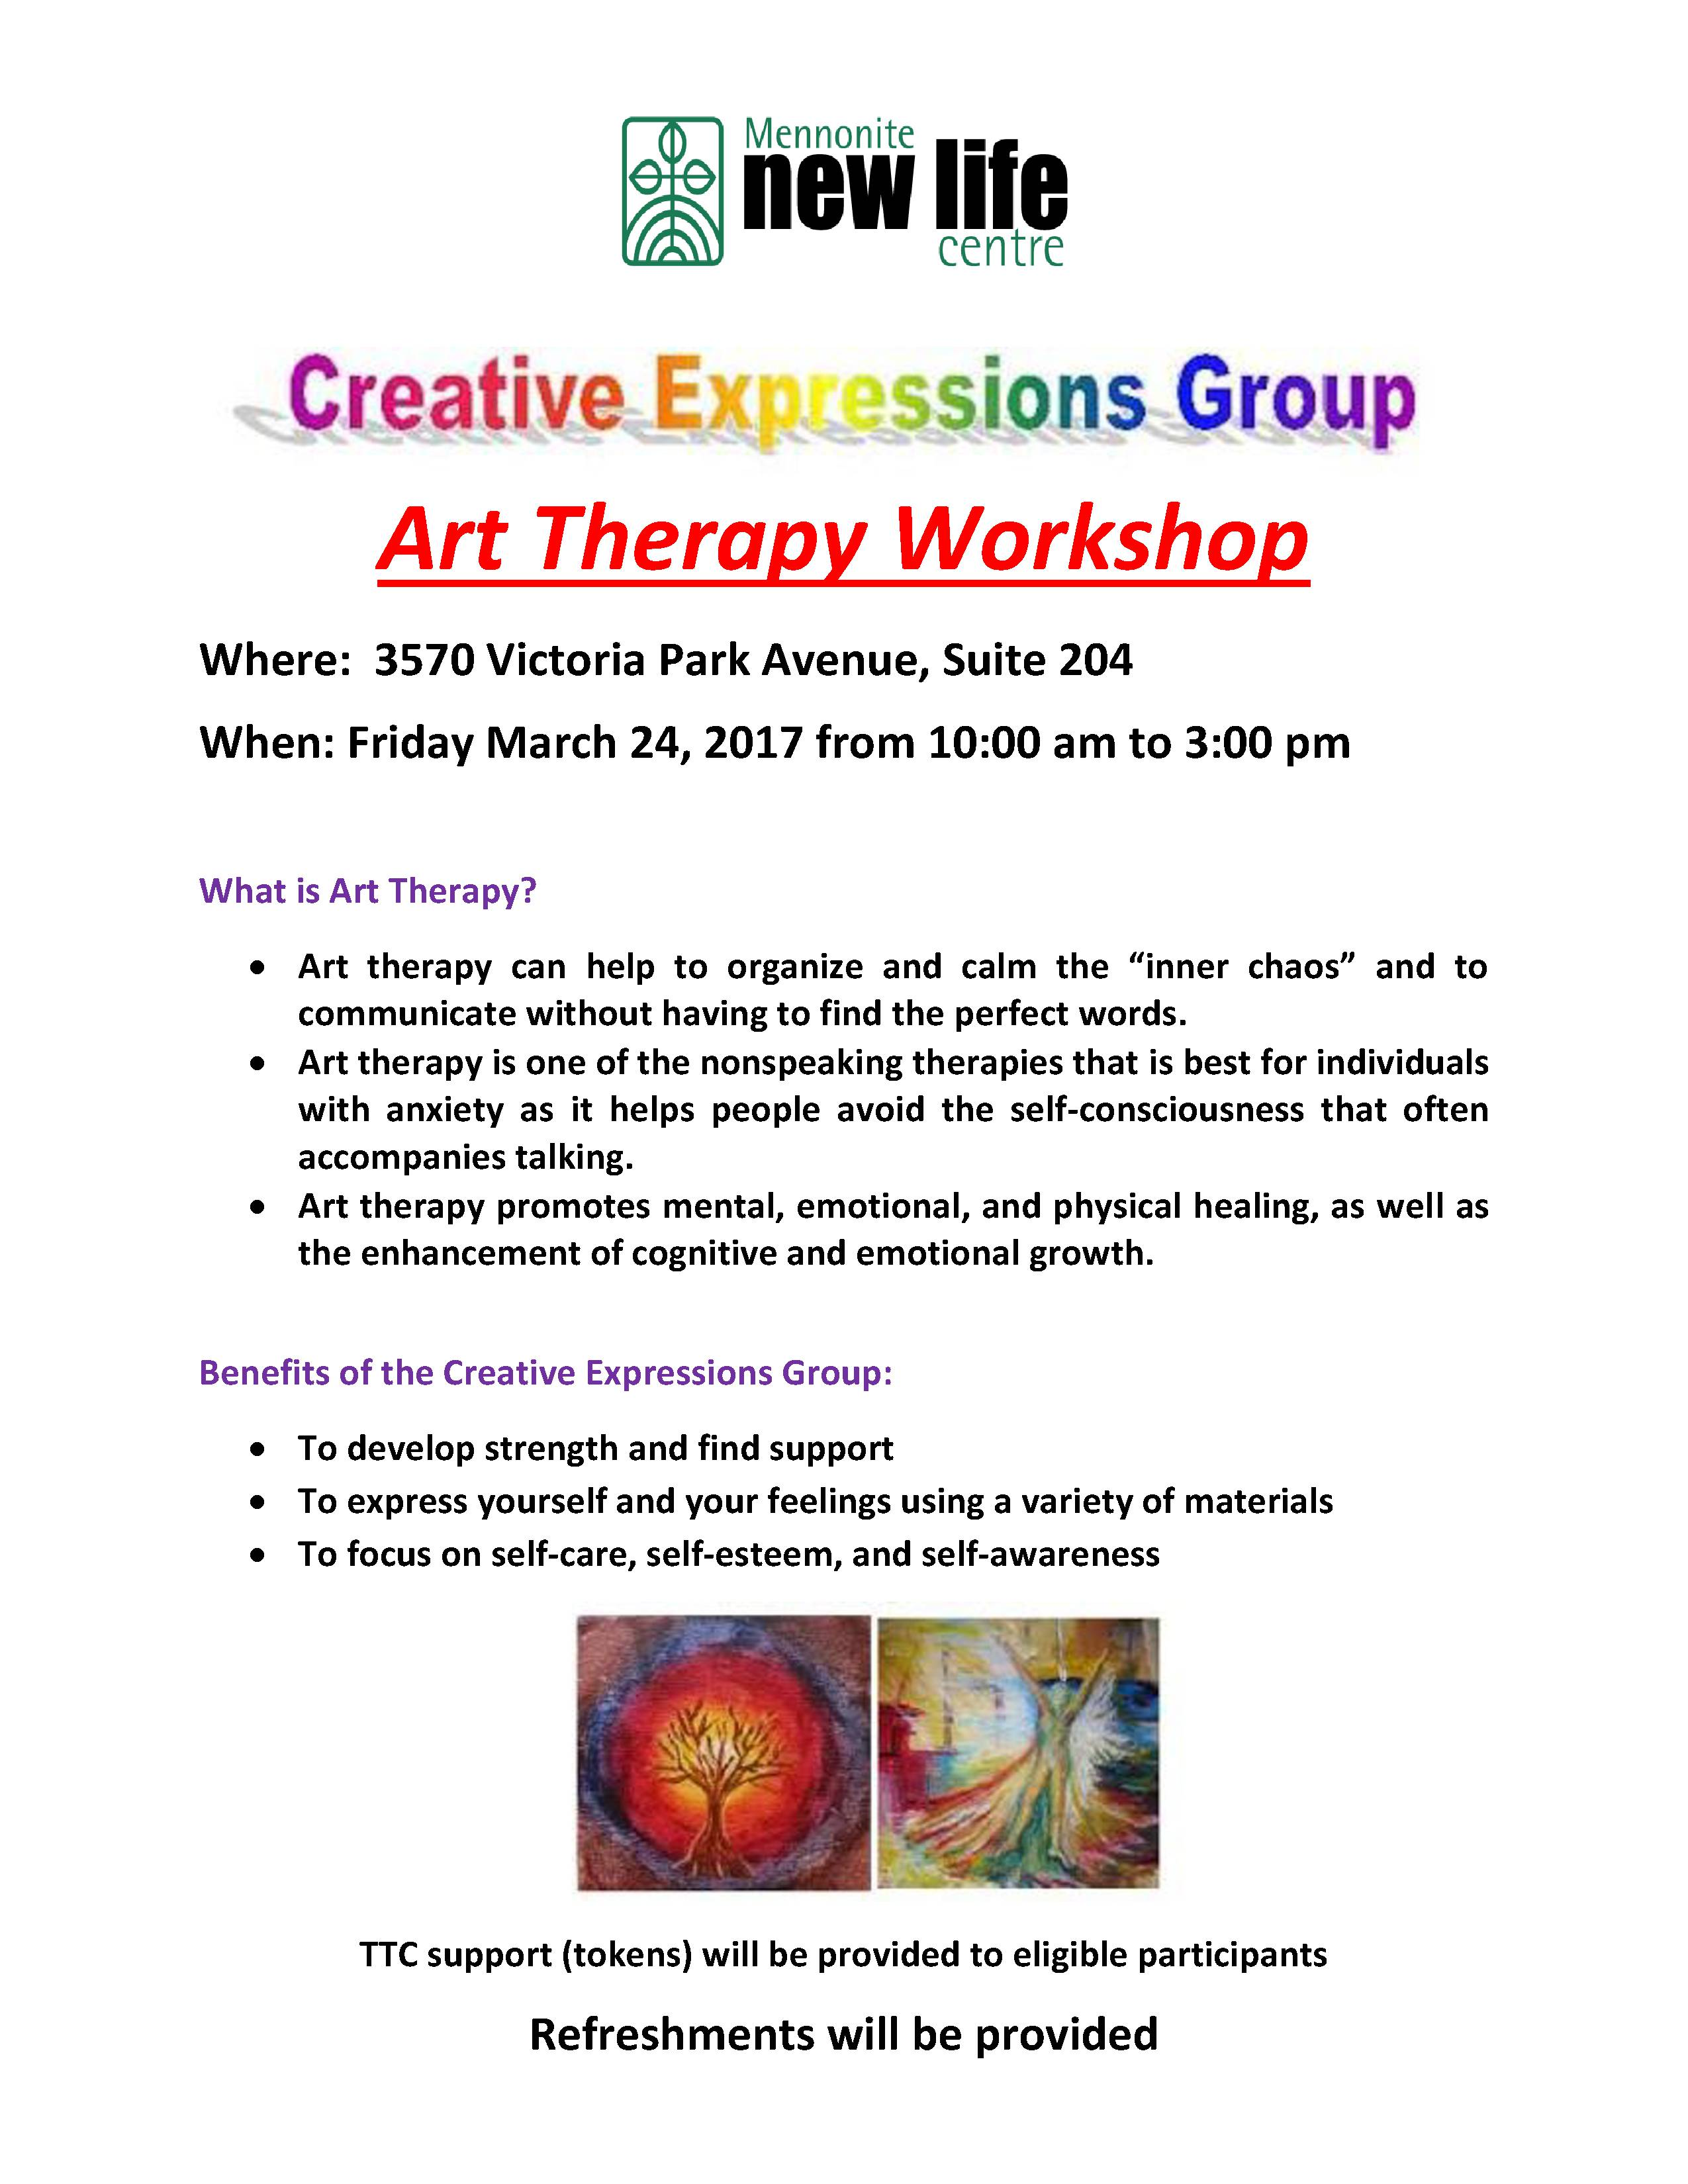 Art Therapy Workshop flyer - Mar 24, 2017